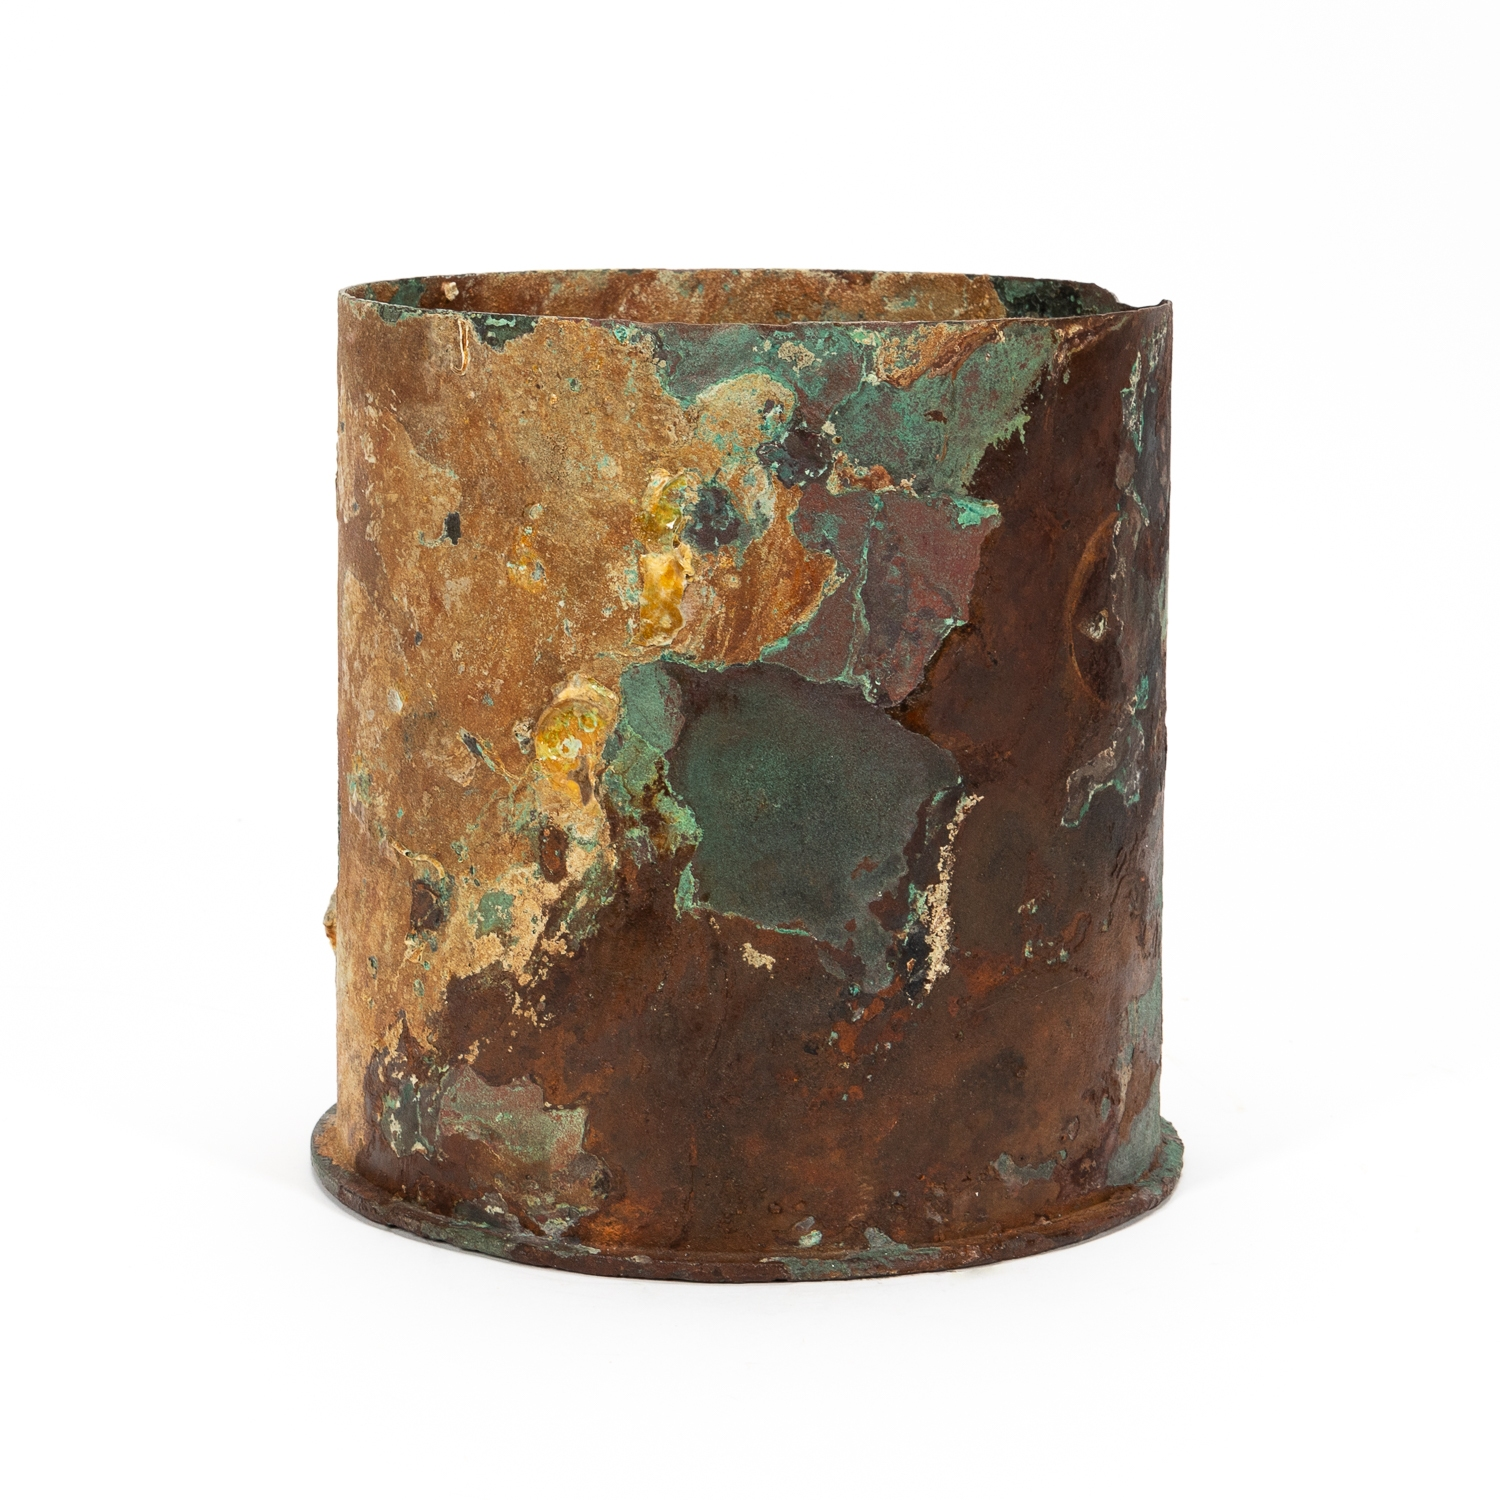 RMS CARPATHIA, SALVAGED ARTILLERY SHELL CASING - Image 4 of 6